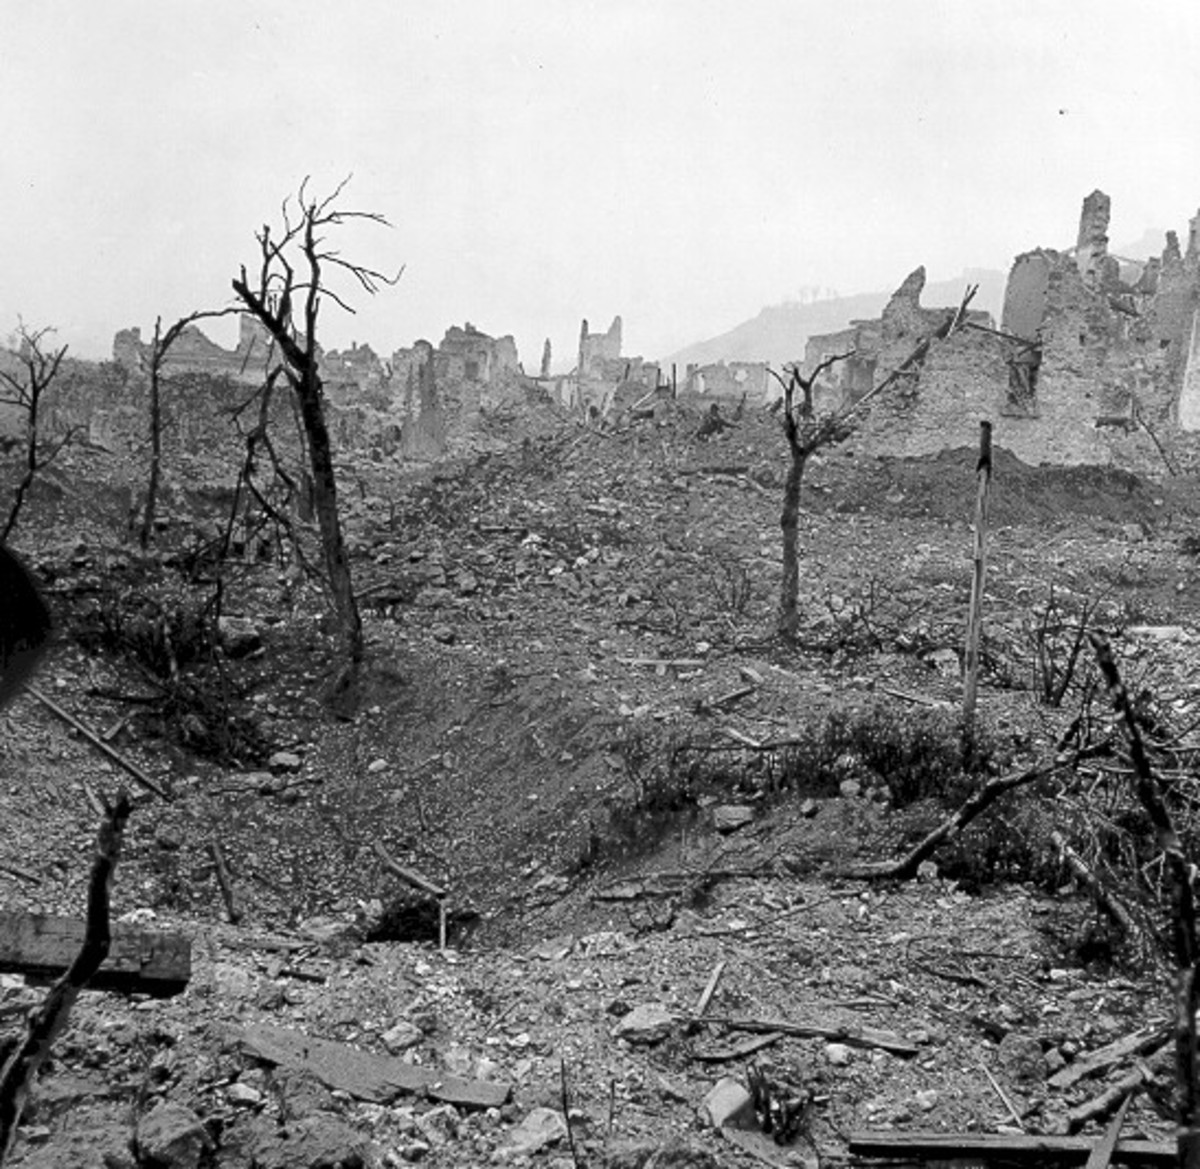 The stark landscape of Monte Cassino